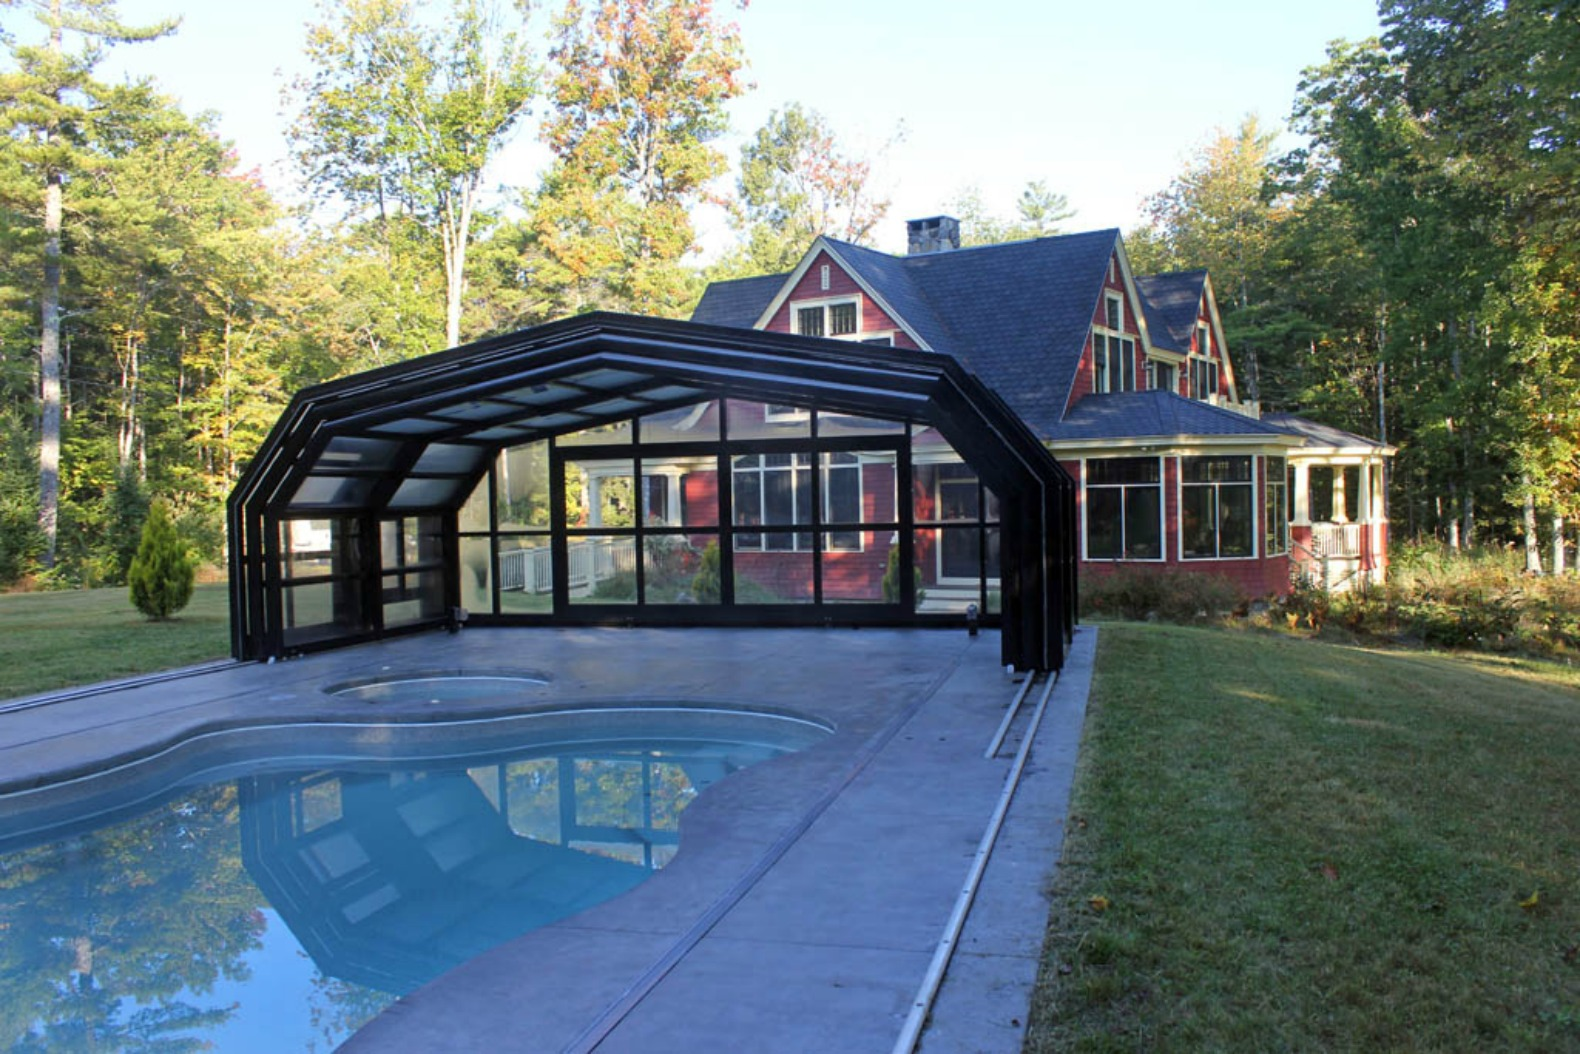 Libart, Libart Retractable Pool Cover, Sliding Buildings, Evolution  Freestanding, Libart Retractable Structures